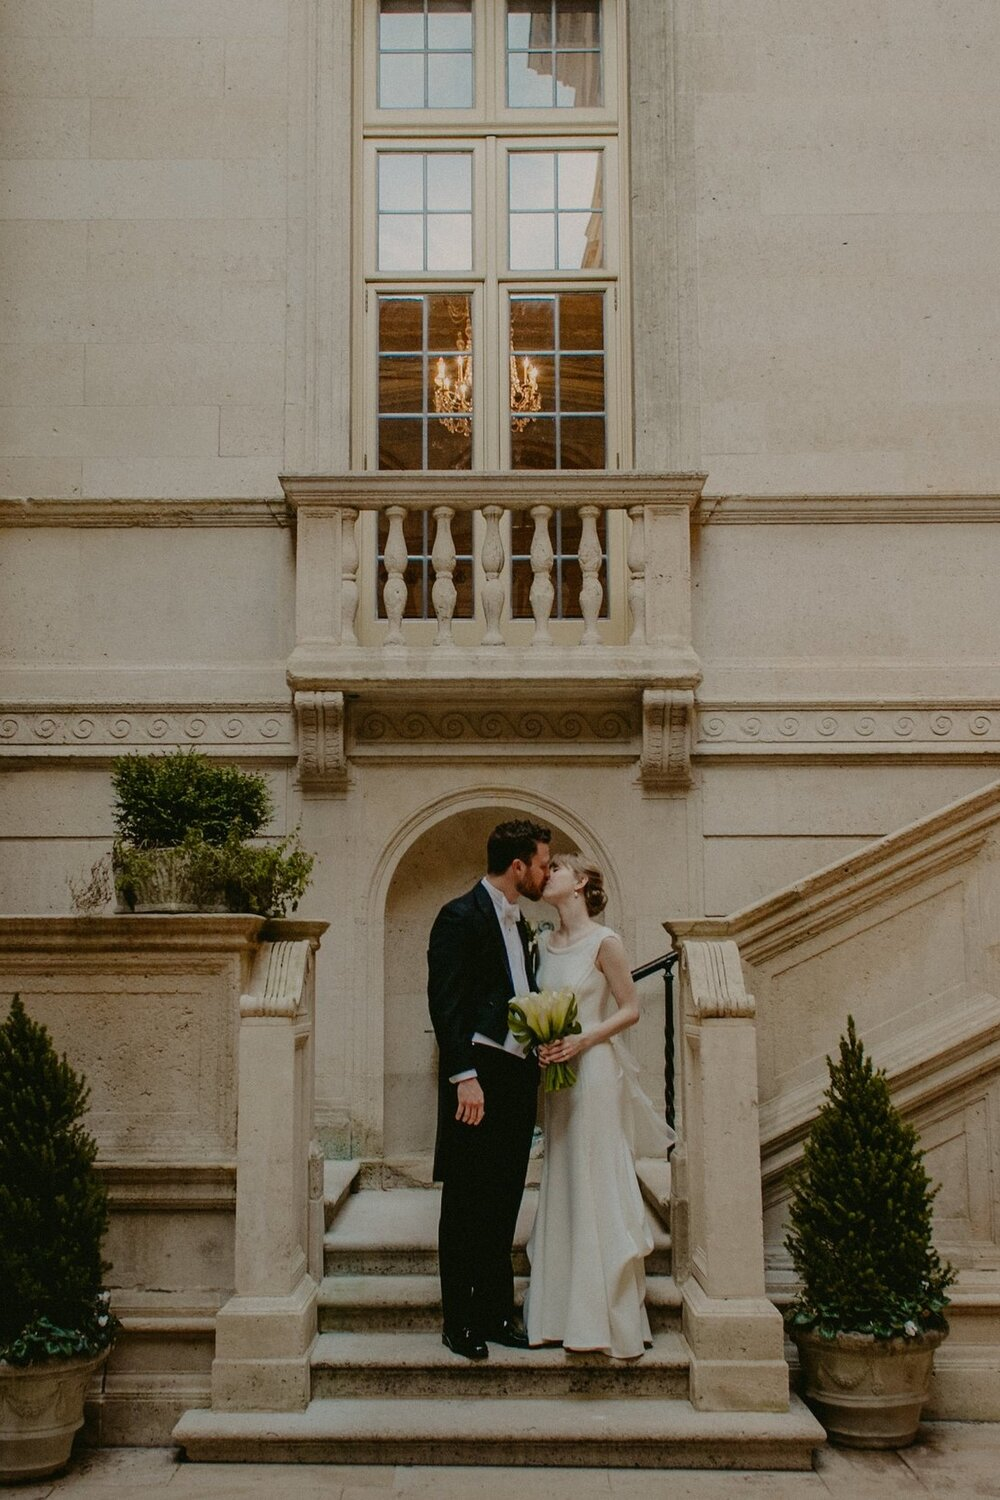 Josie_&_Traver_James_Burden_Mansion_Wedding_Chellise_Michael_Photography-518.jpg